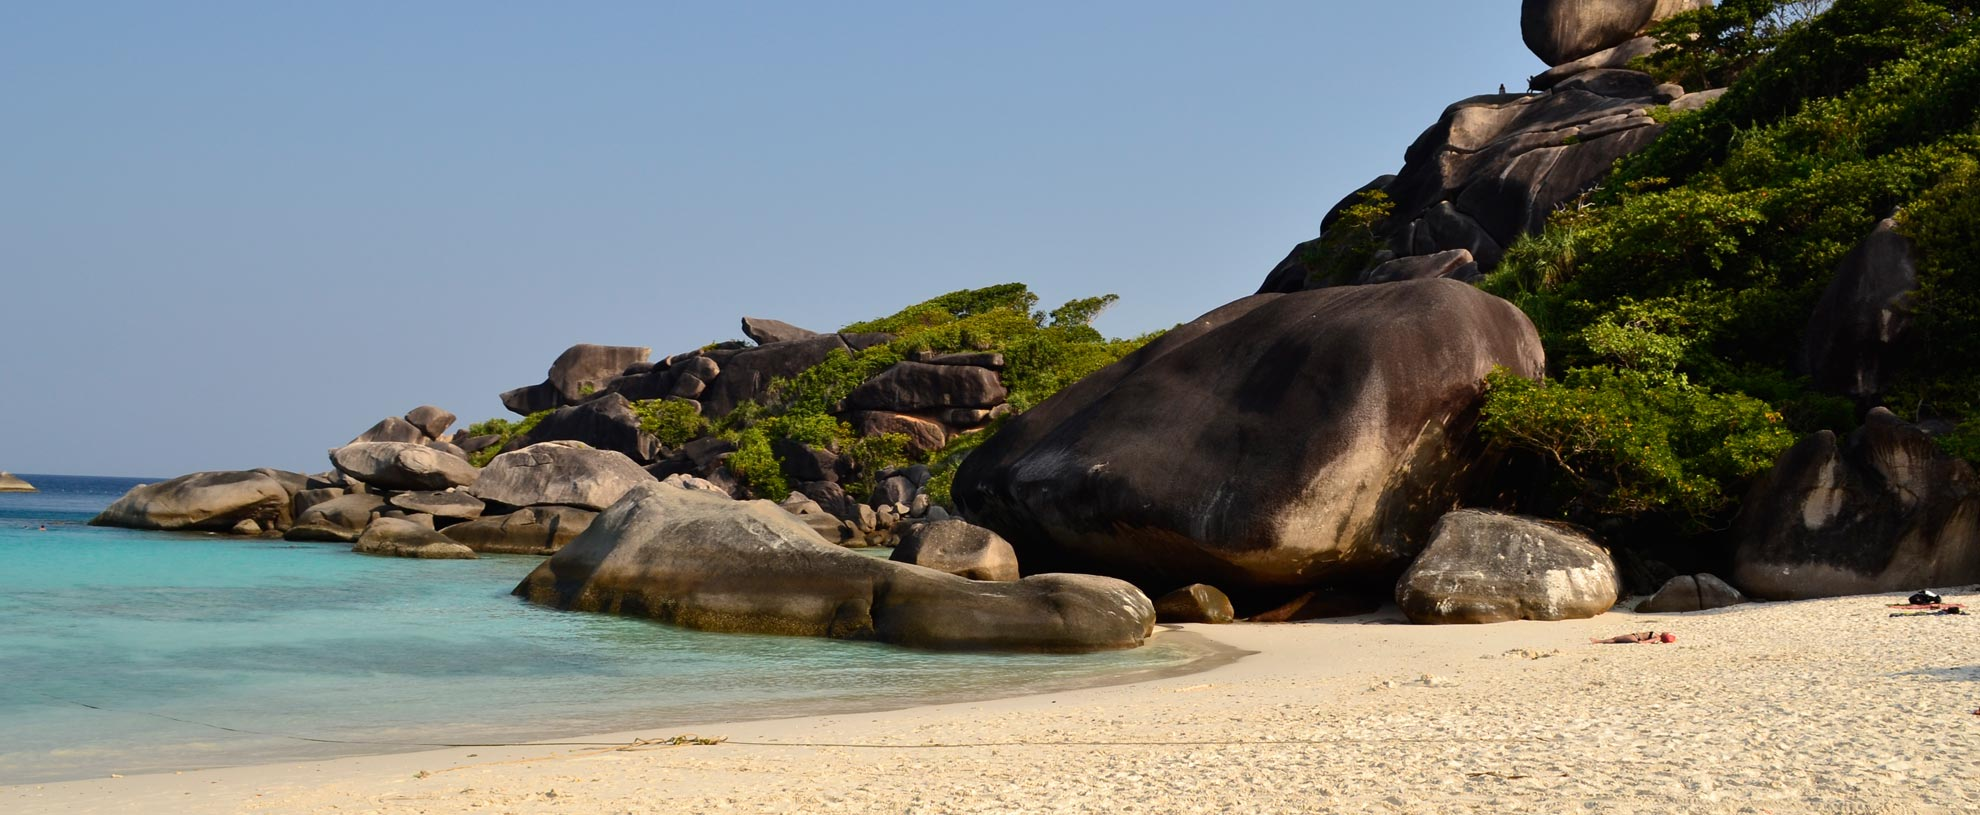 Sandy beach at Donald Duck bay in the Similan Islands